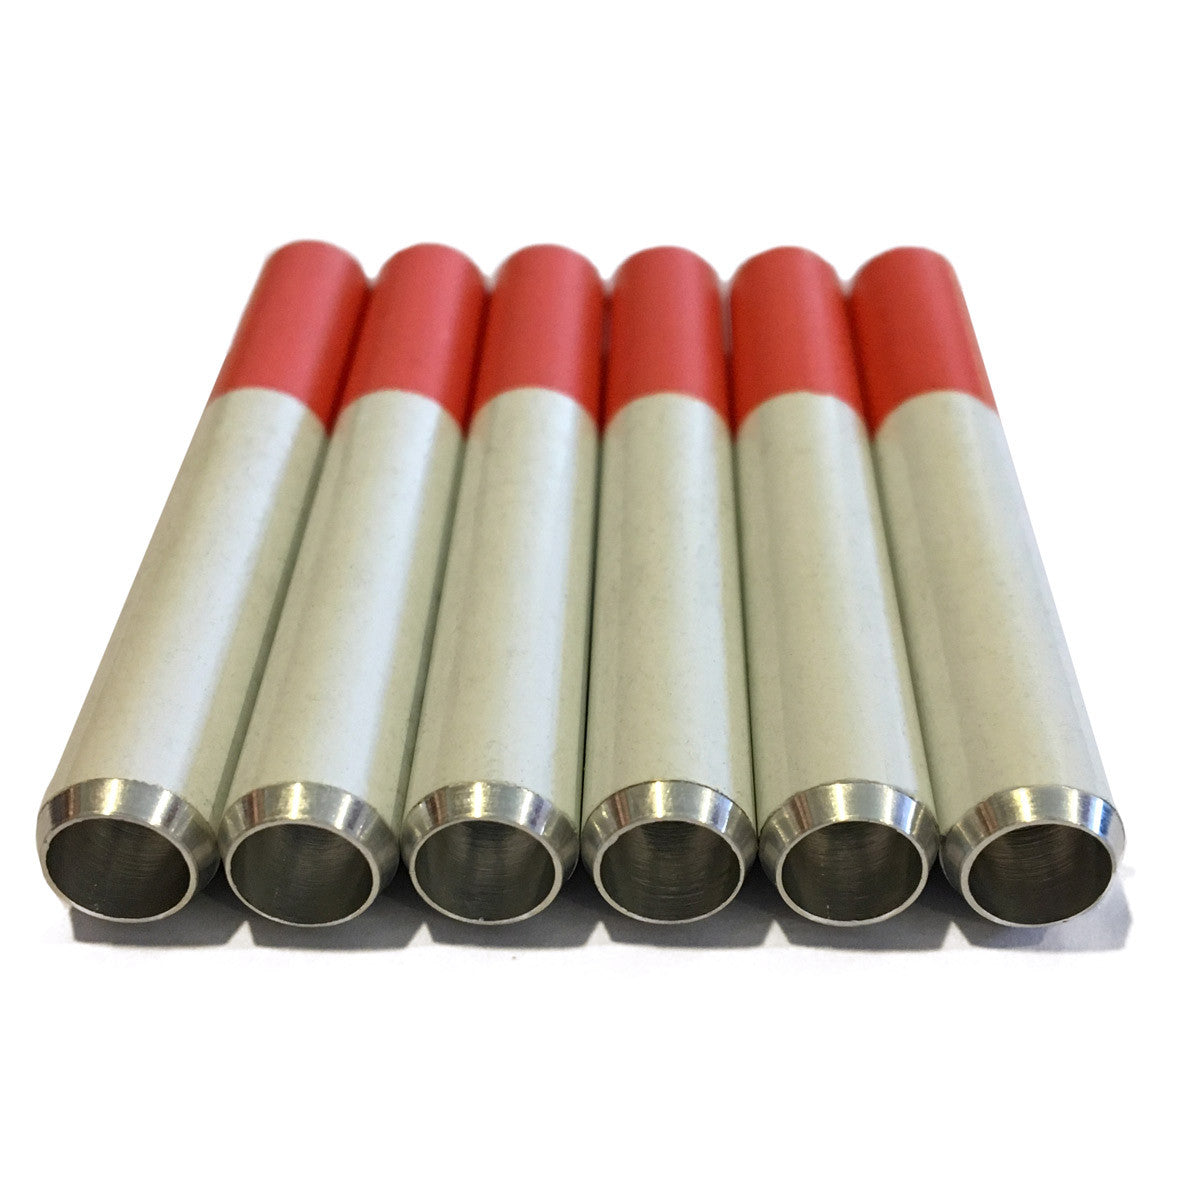 2 Aluminum Tobacco Bat - 6 Pack